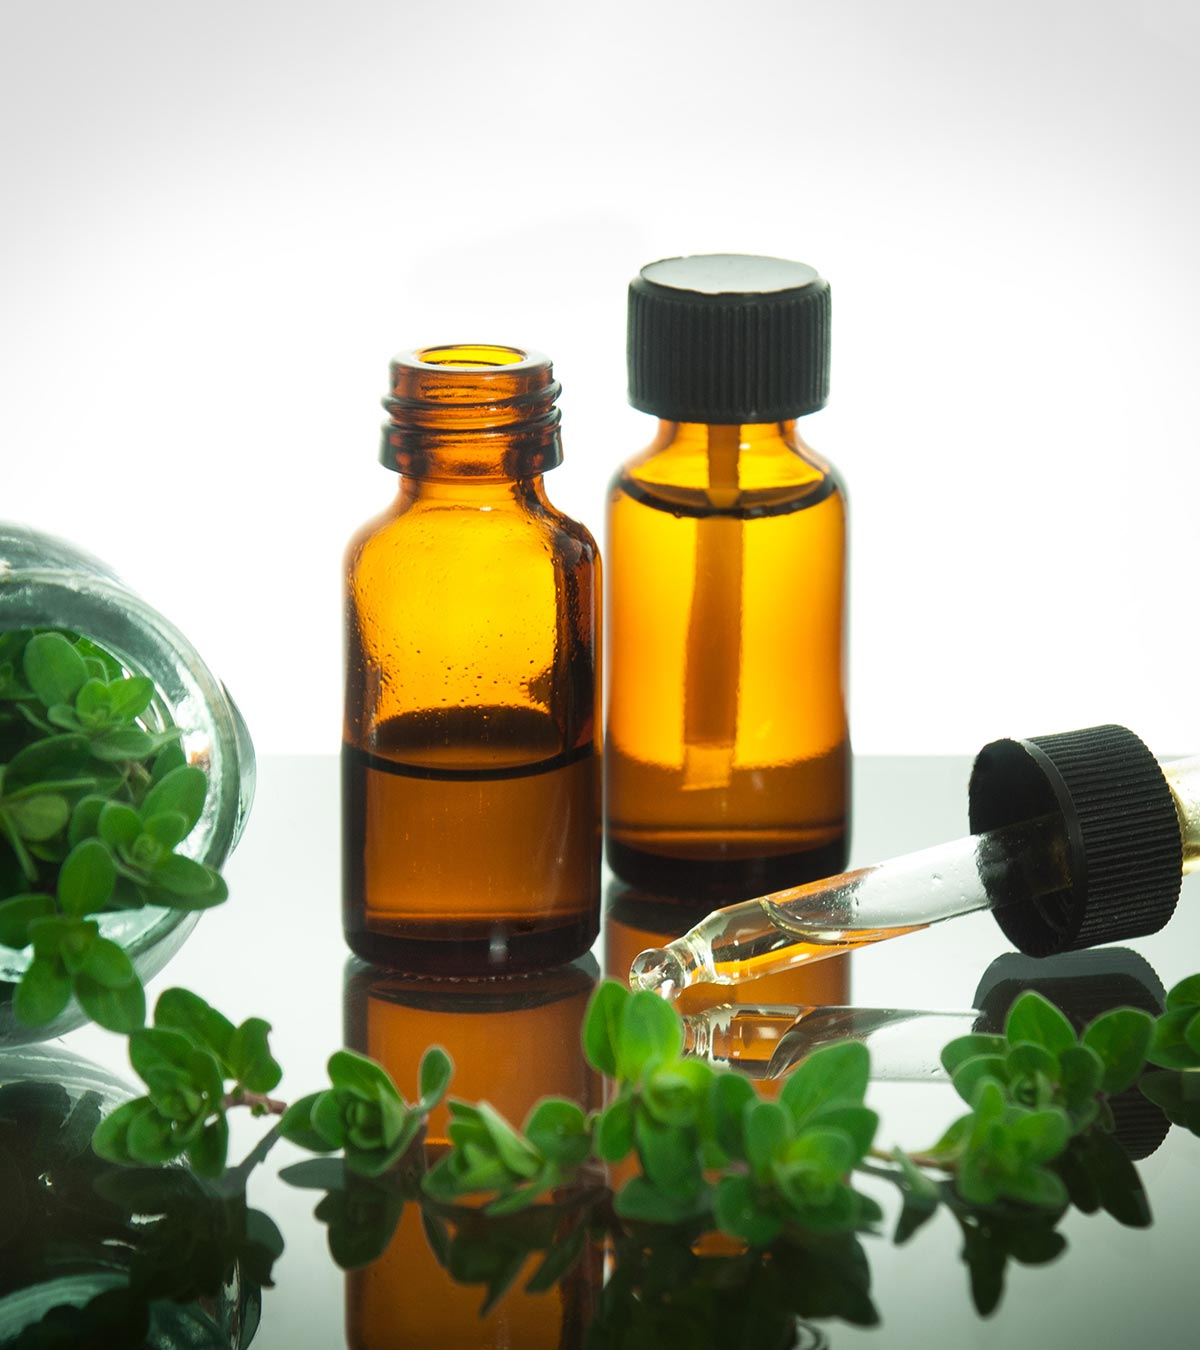 Oil Of Oregano During Pregnancy - 4 Health Benefits & 3 Side